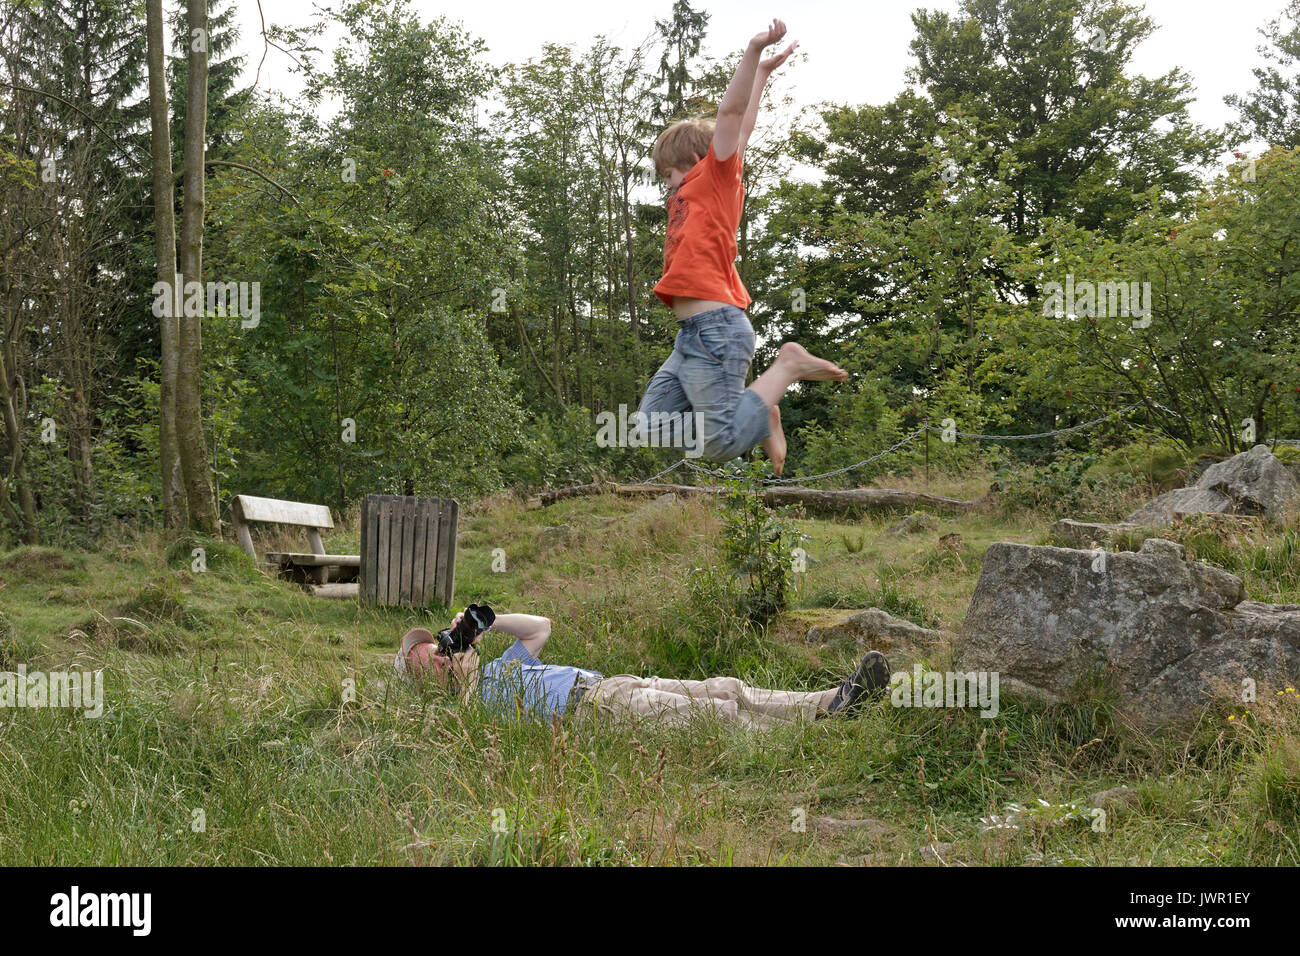 man taking photo of jumping boy - Stock Image